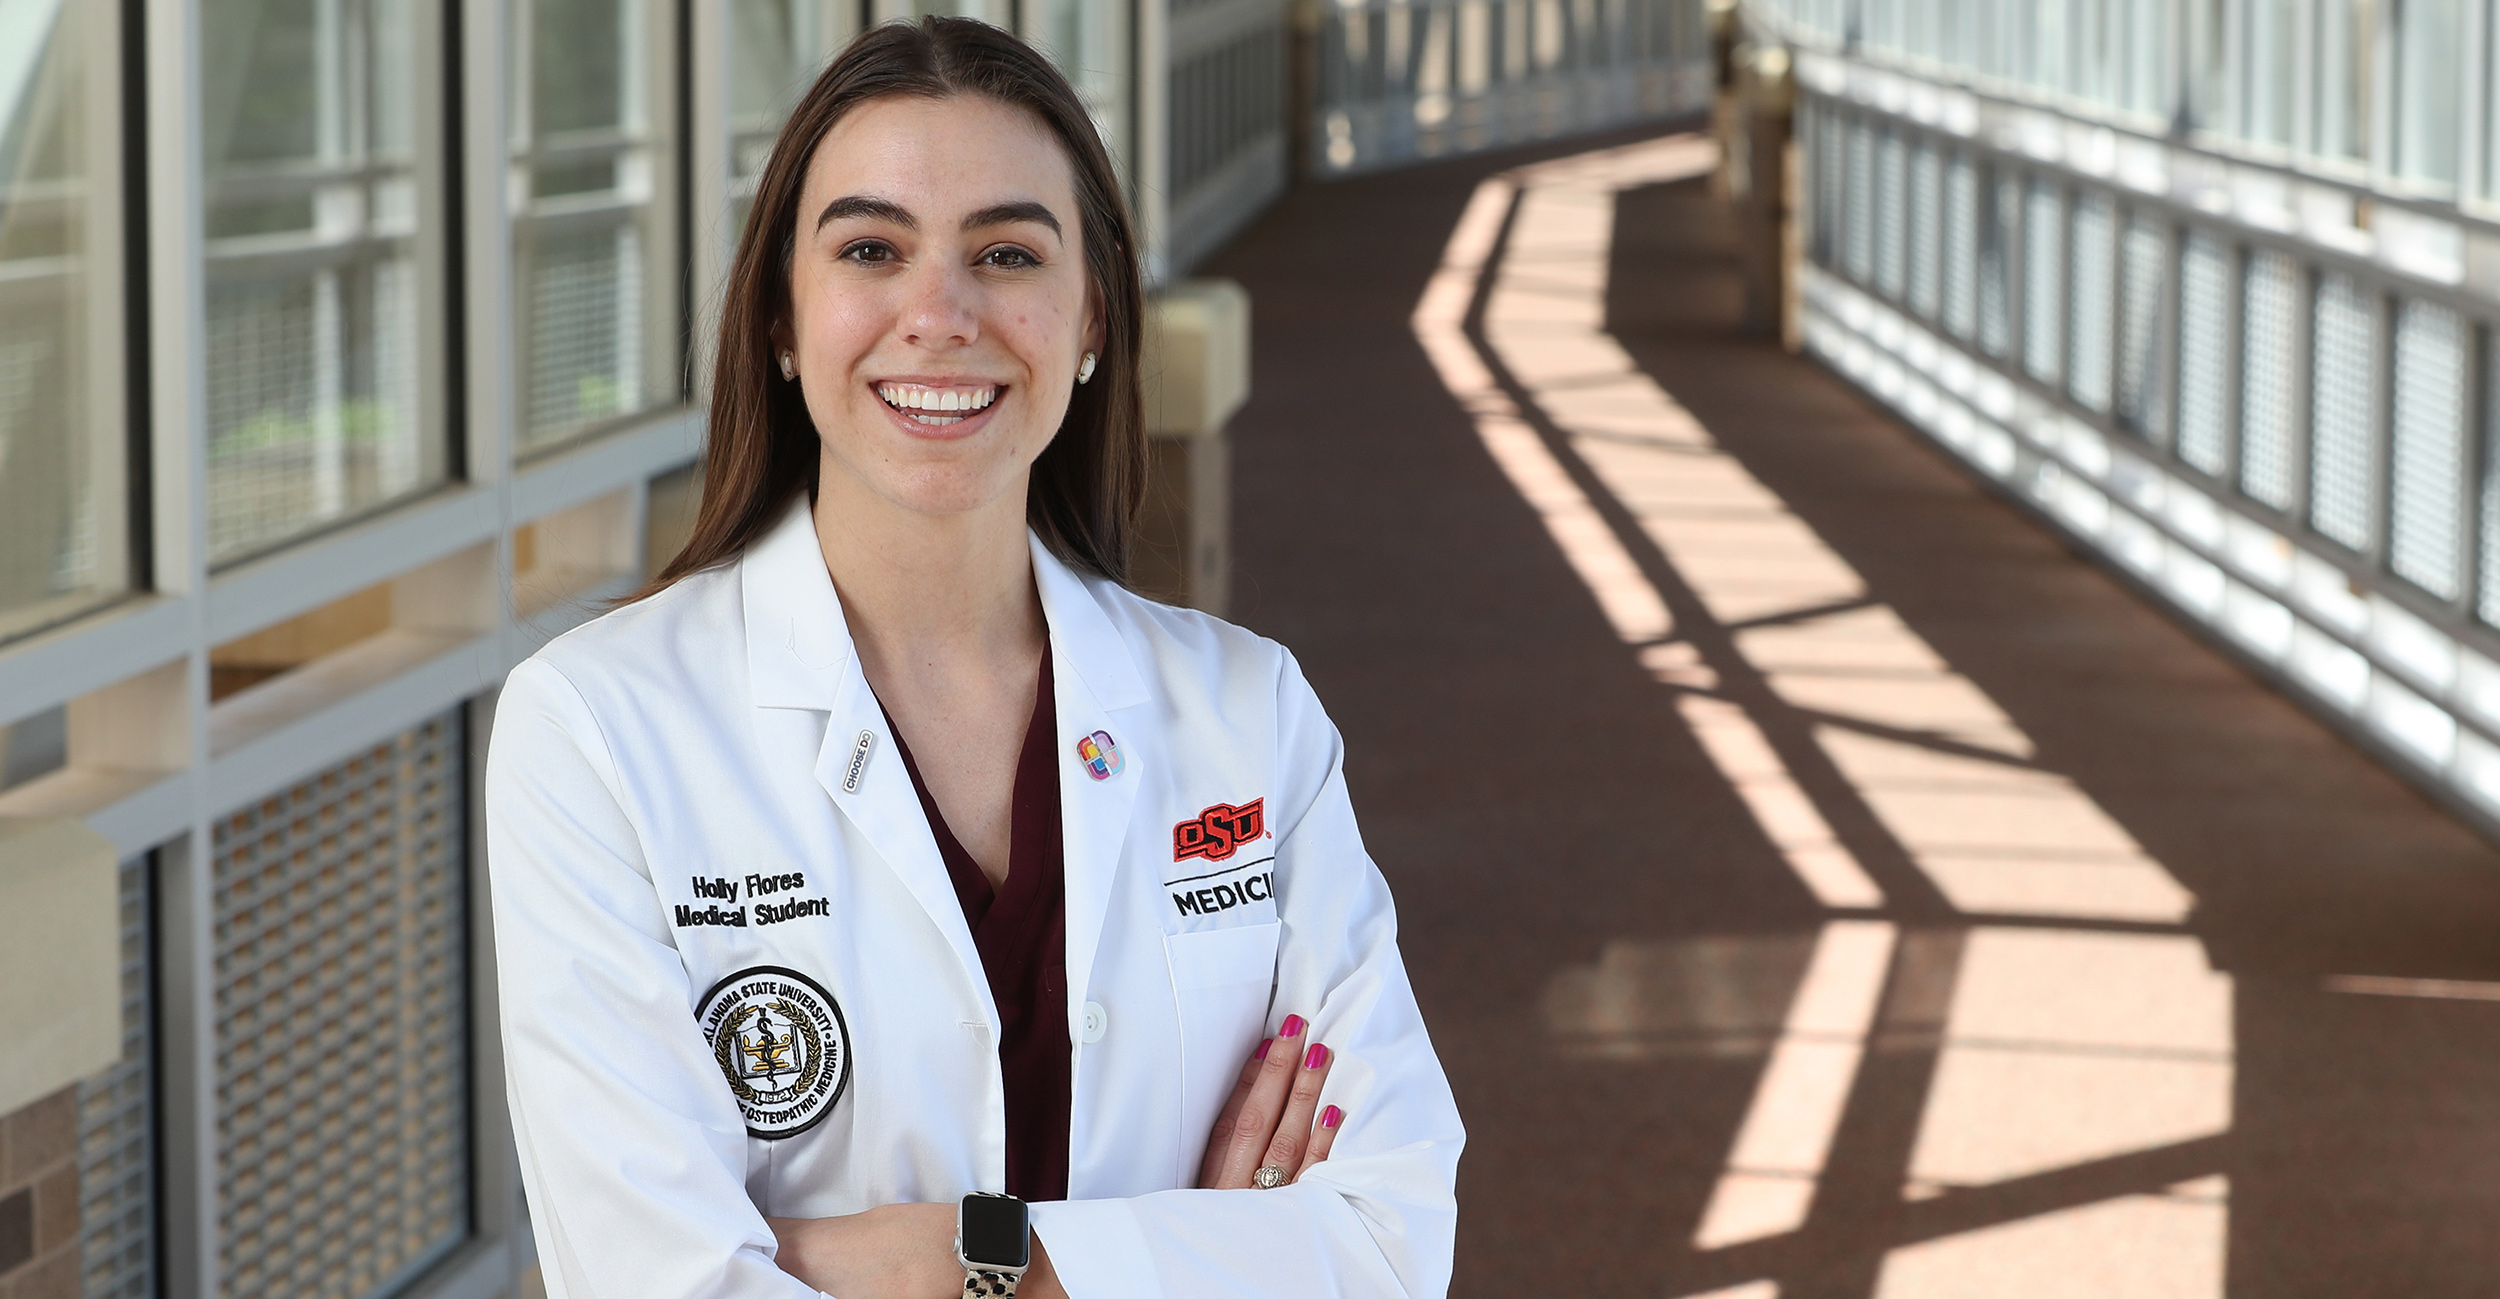 Holly Flores, a third year medical student at OSU College of Osteopathic Medicine, is one of only 10 med students in the country selected for the ElevateMeD Scholar program.